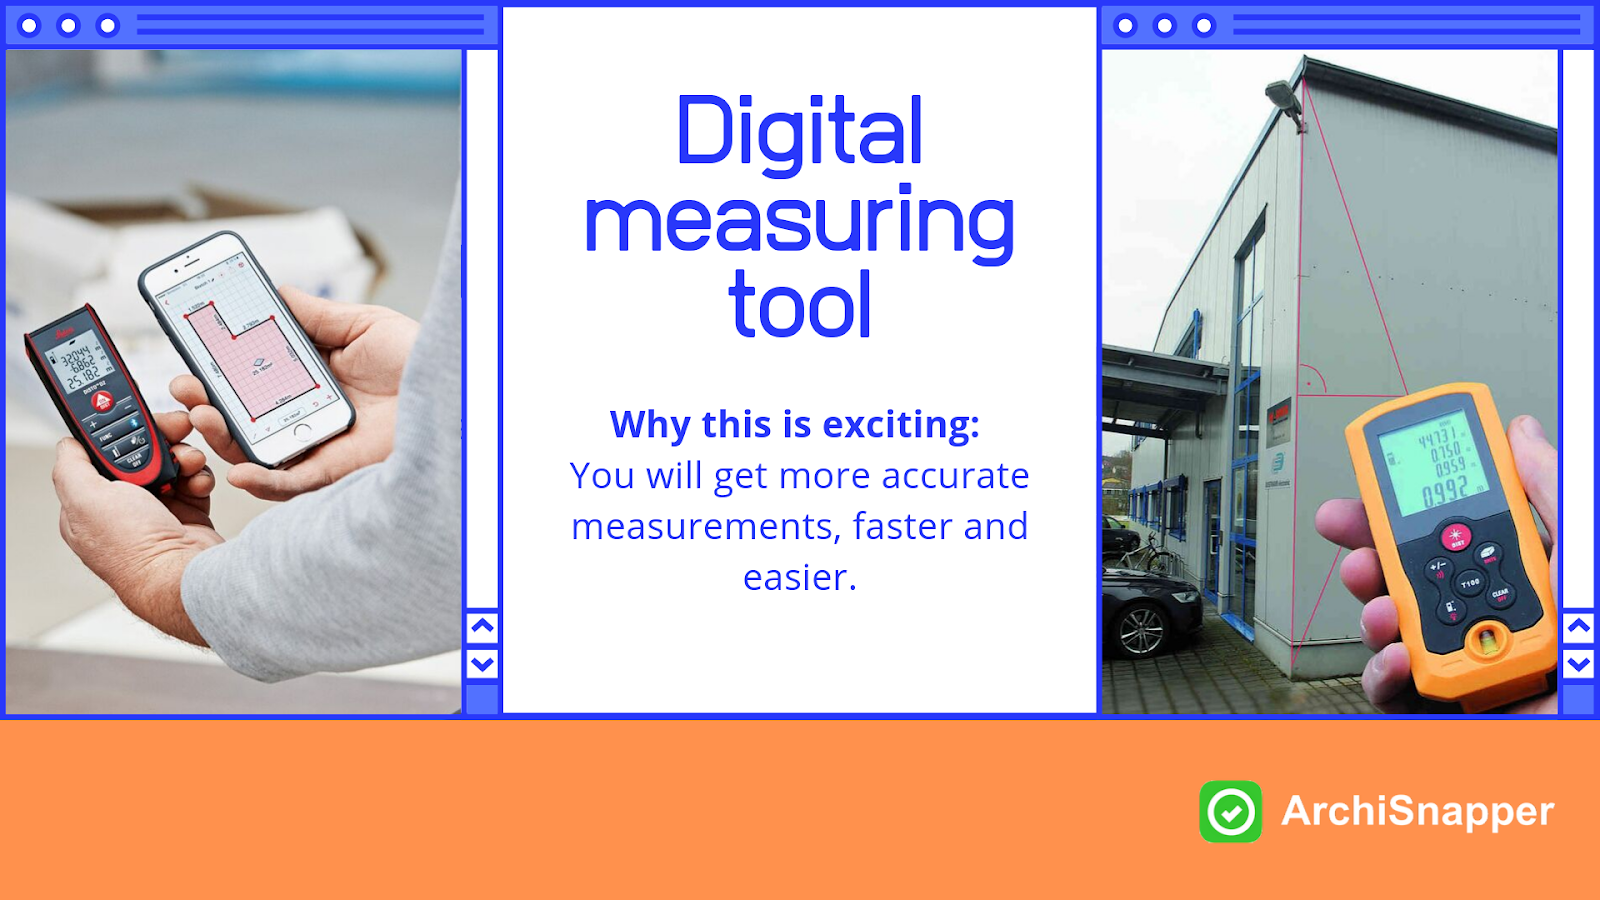 Digital measuring tool | List of the 15 must-have tech tools and accessories ideal for architects presented by Archisnapper